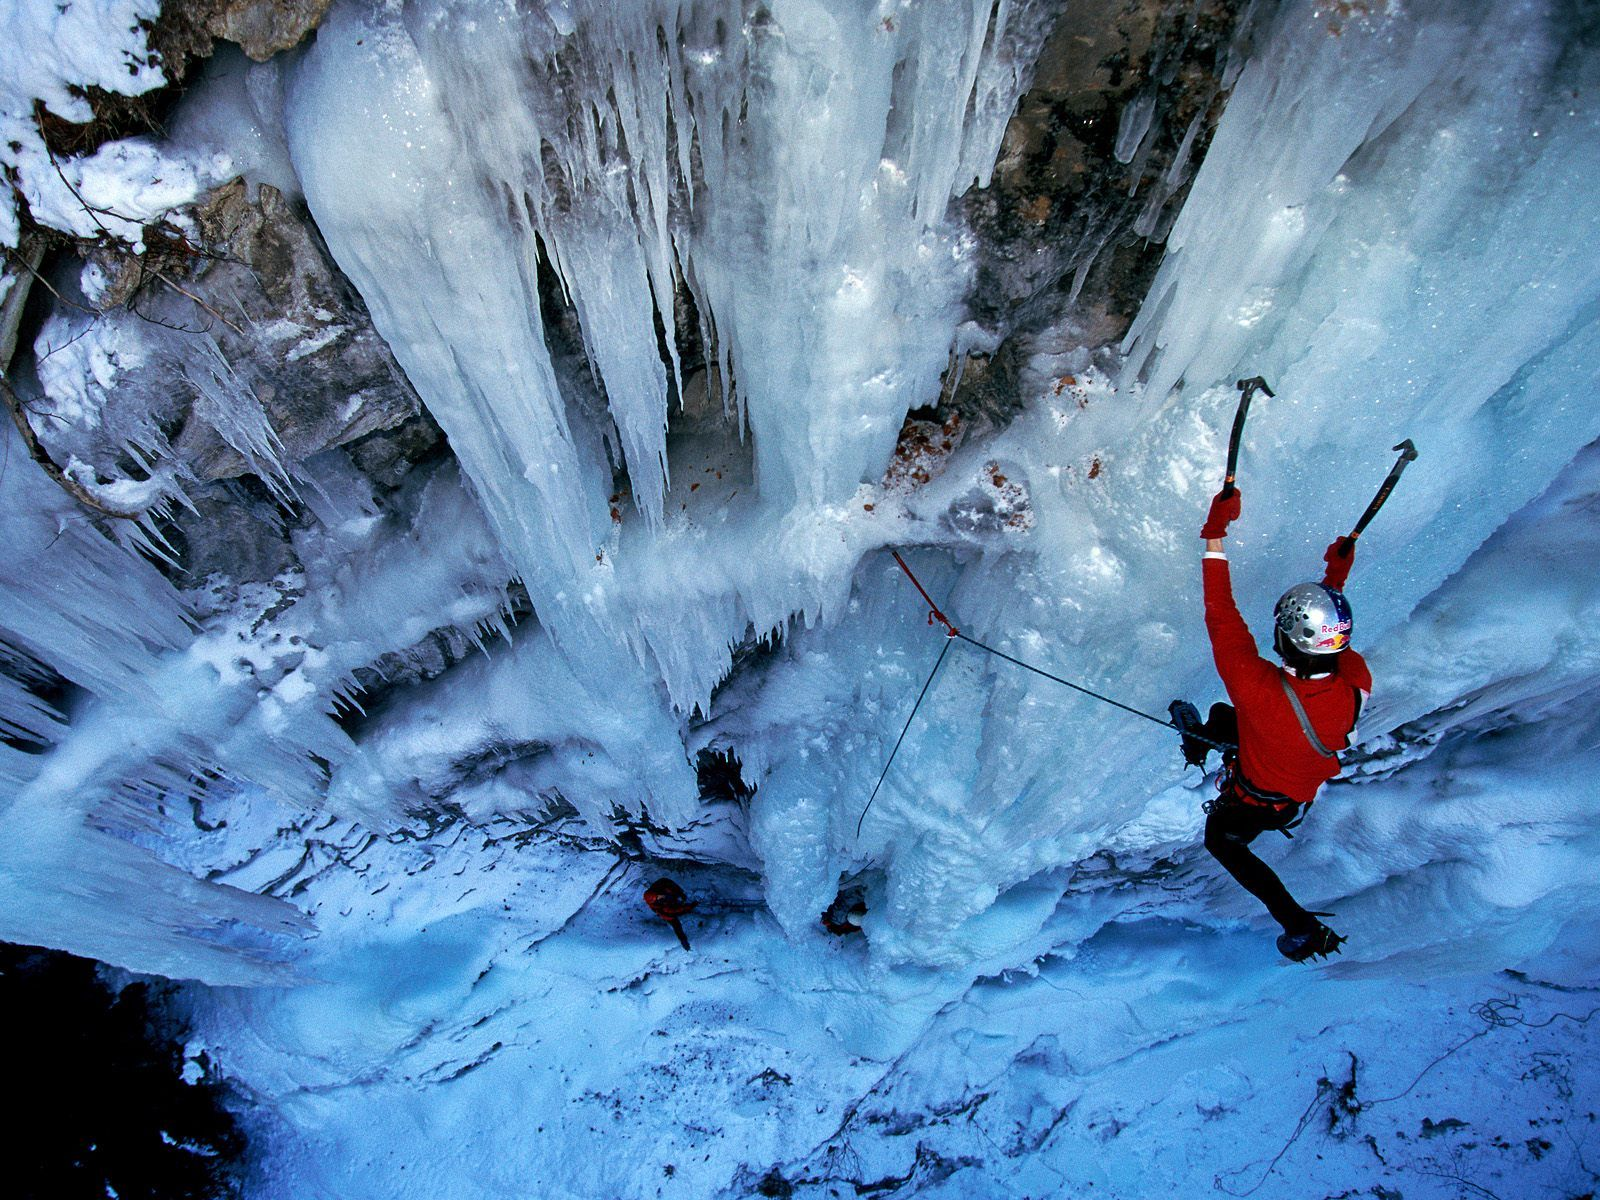 Climbing over Ice in a Icy Waterfall